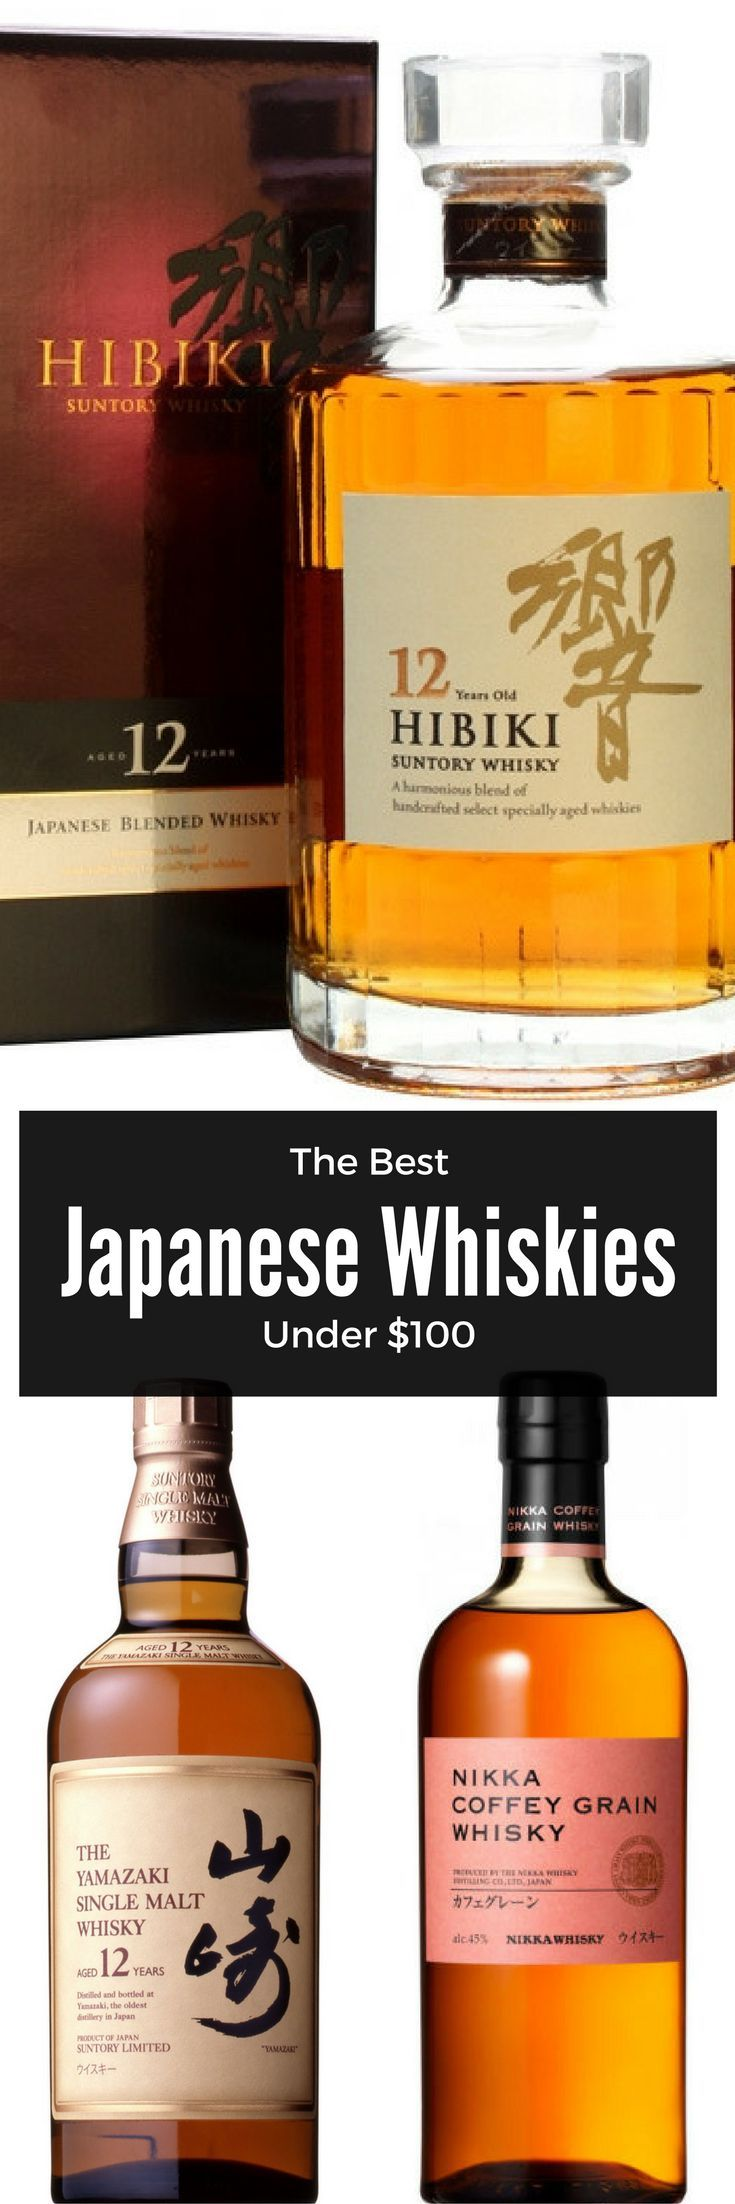 Japanese whisky is a relatively new category on the Western market, but even so, it has quickly earned its place alongside the greatscotchesas some of the best in the world. WhenYamazakiearned the title of World's Best Whisky inJim Murray's Whisky Bi